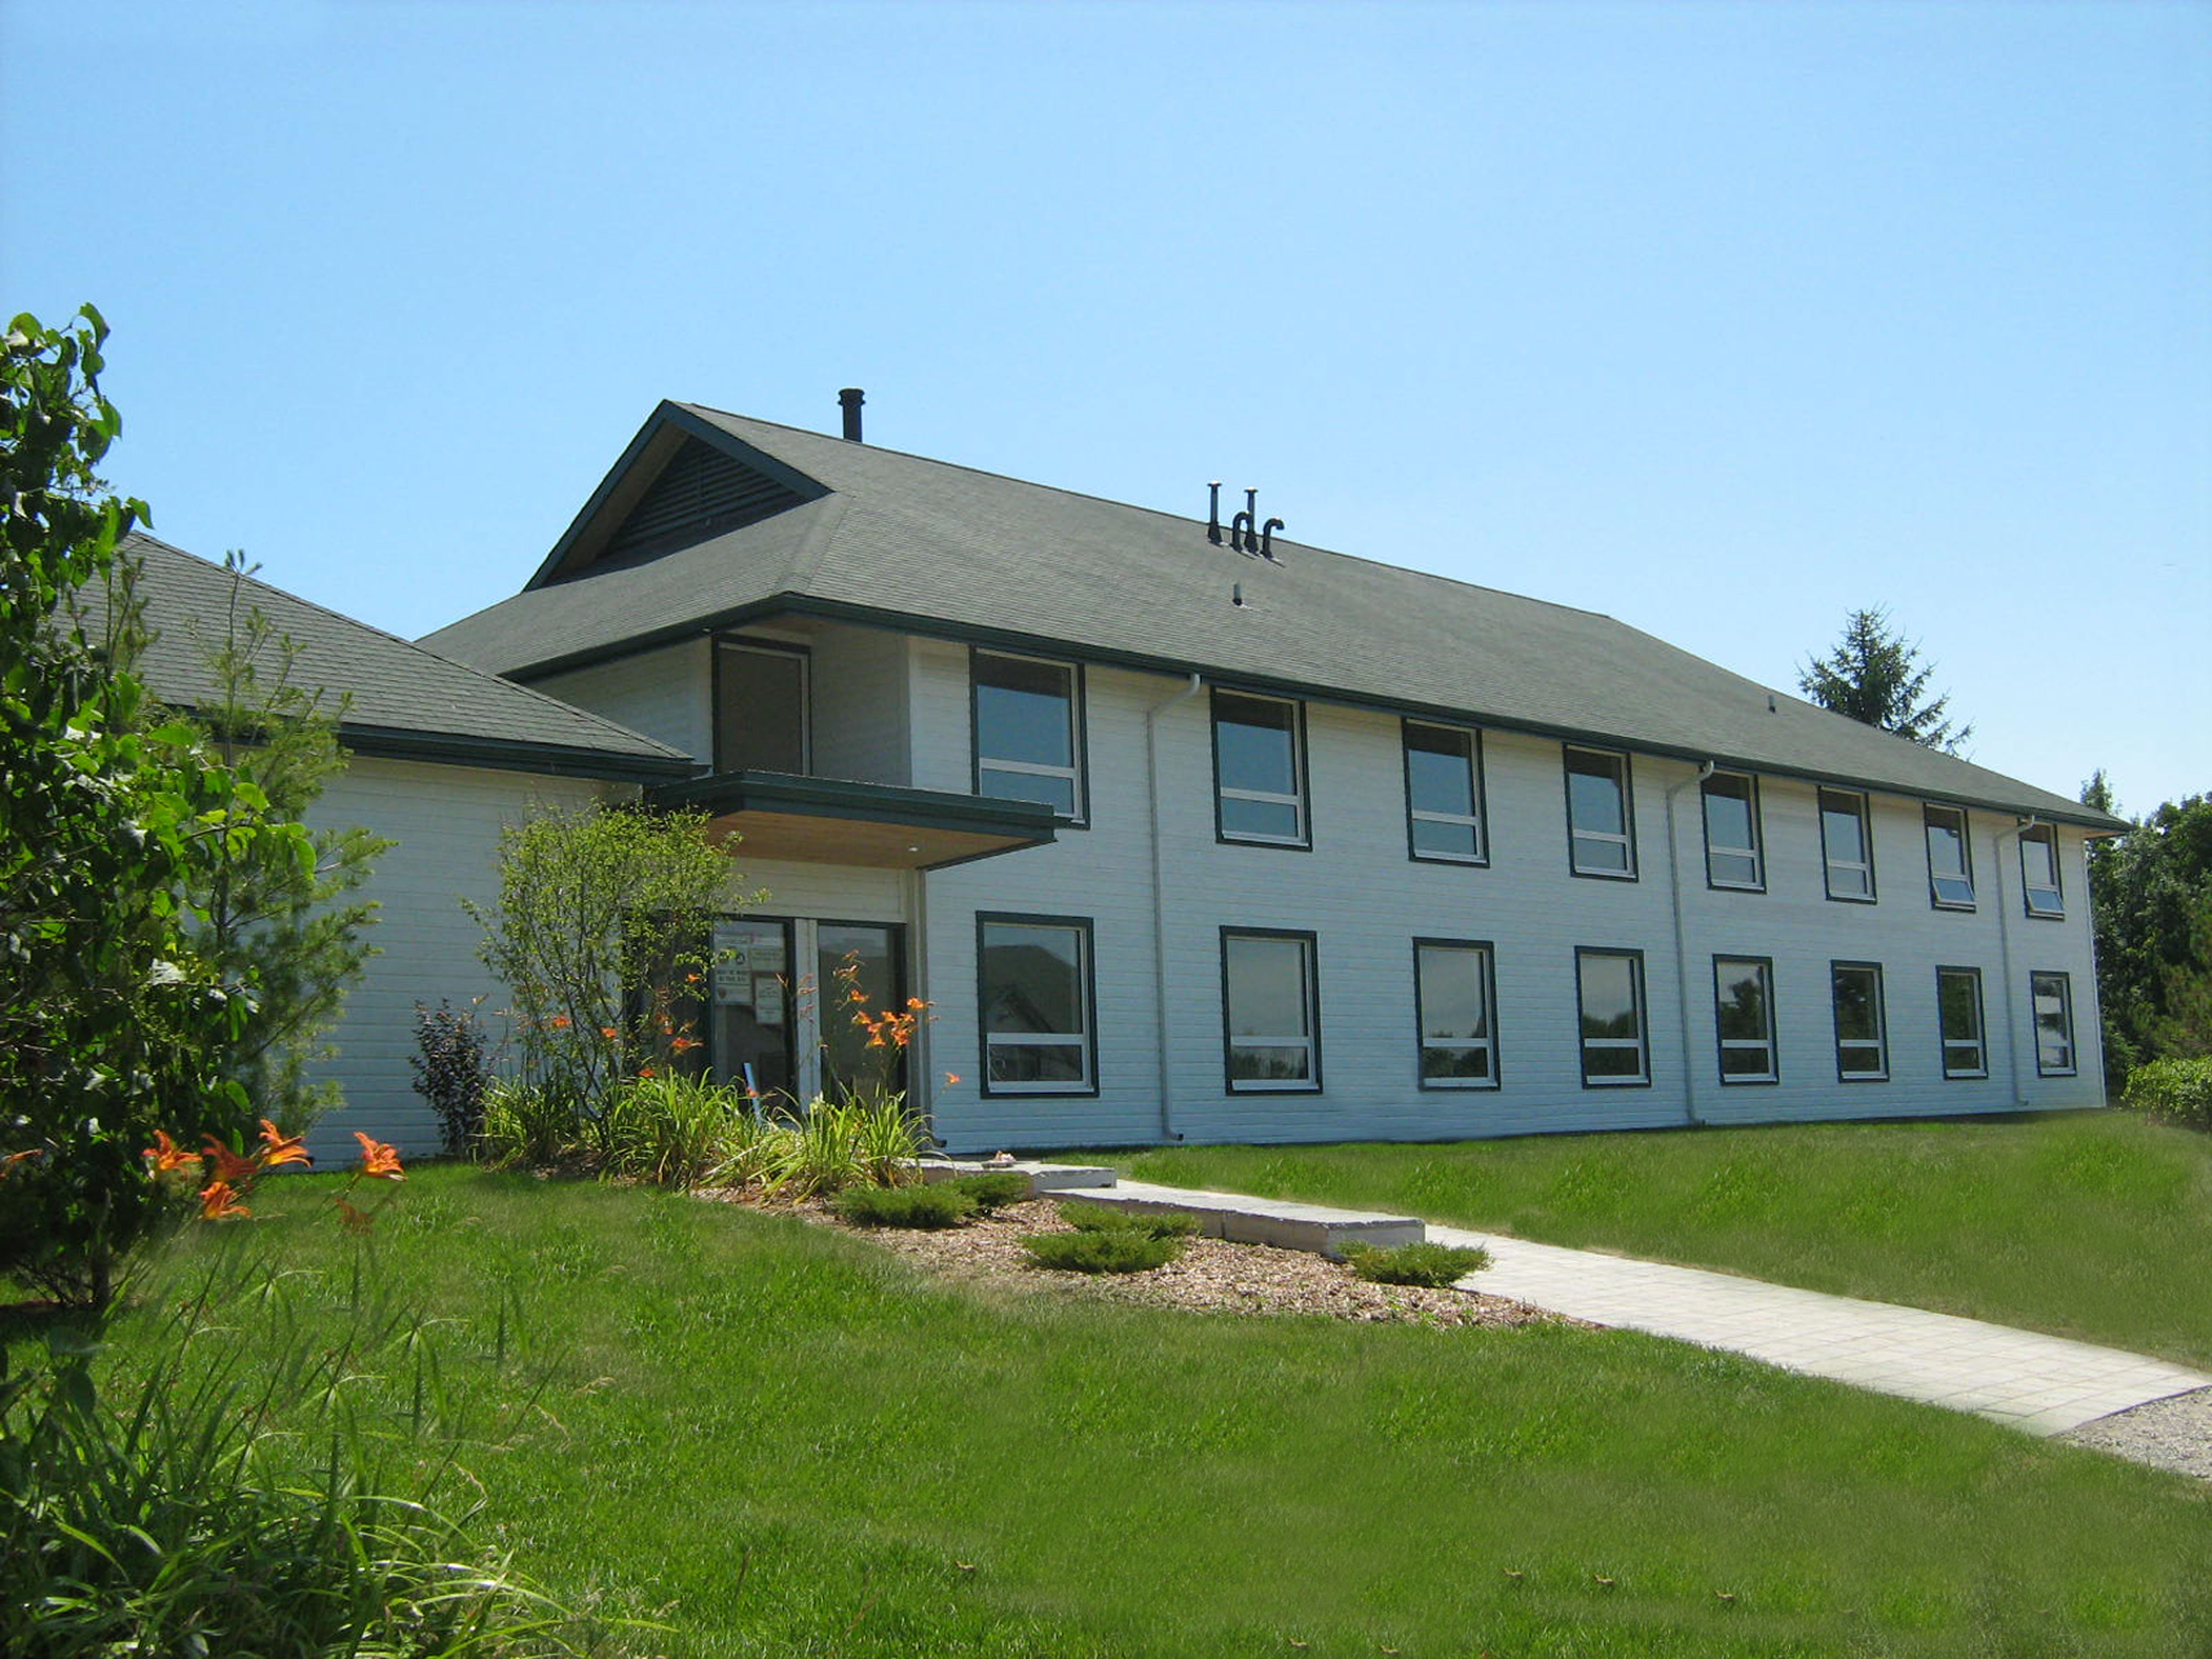 Lakefield College Cooper Residence